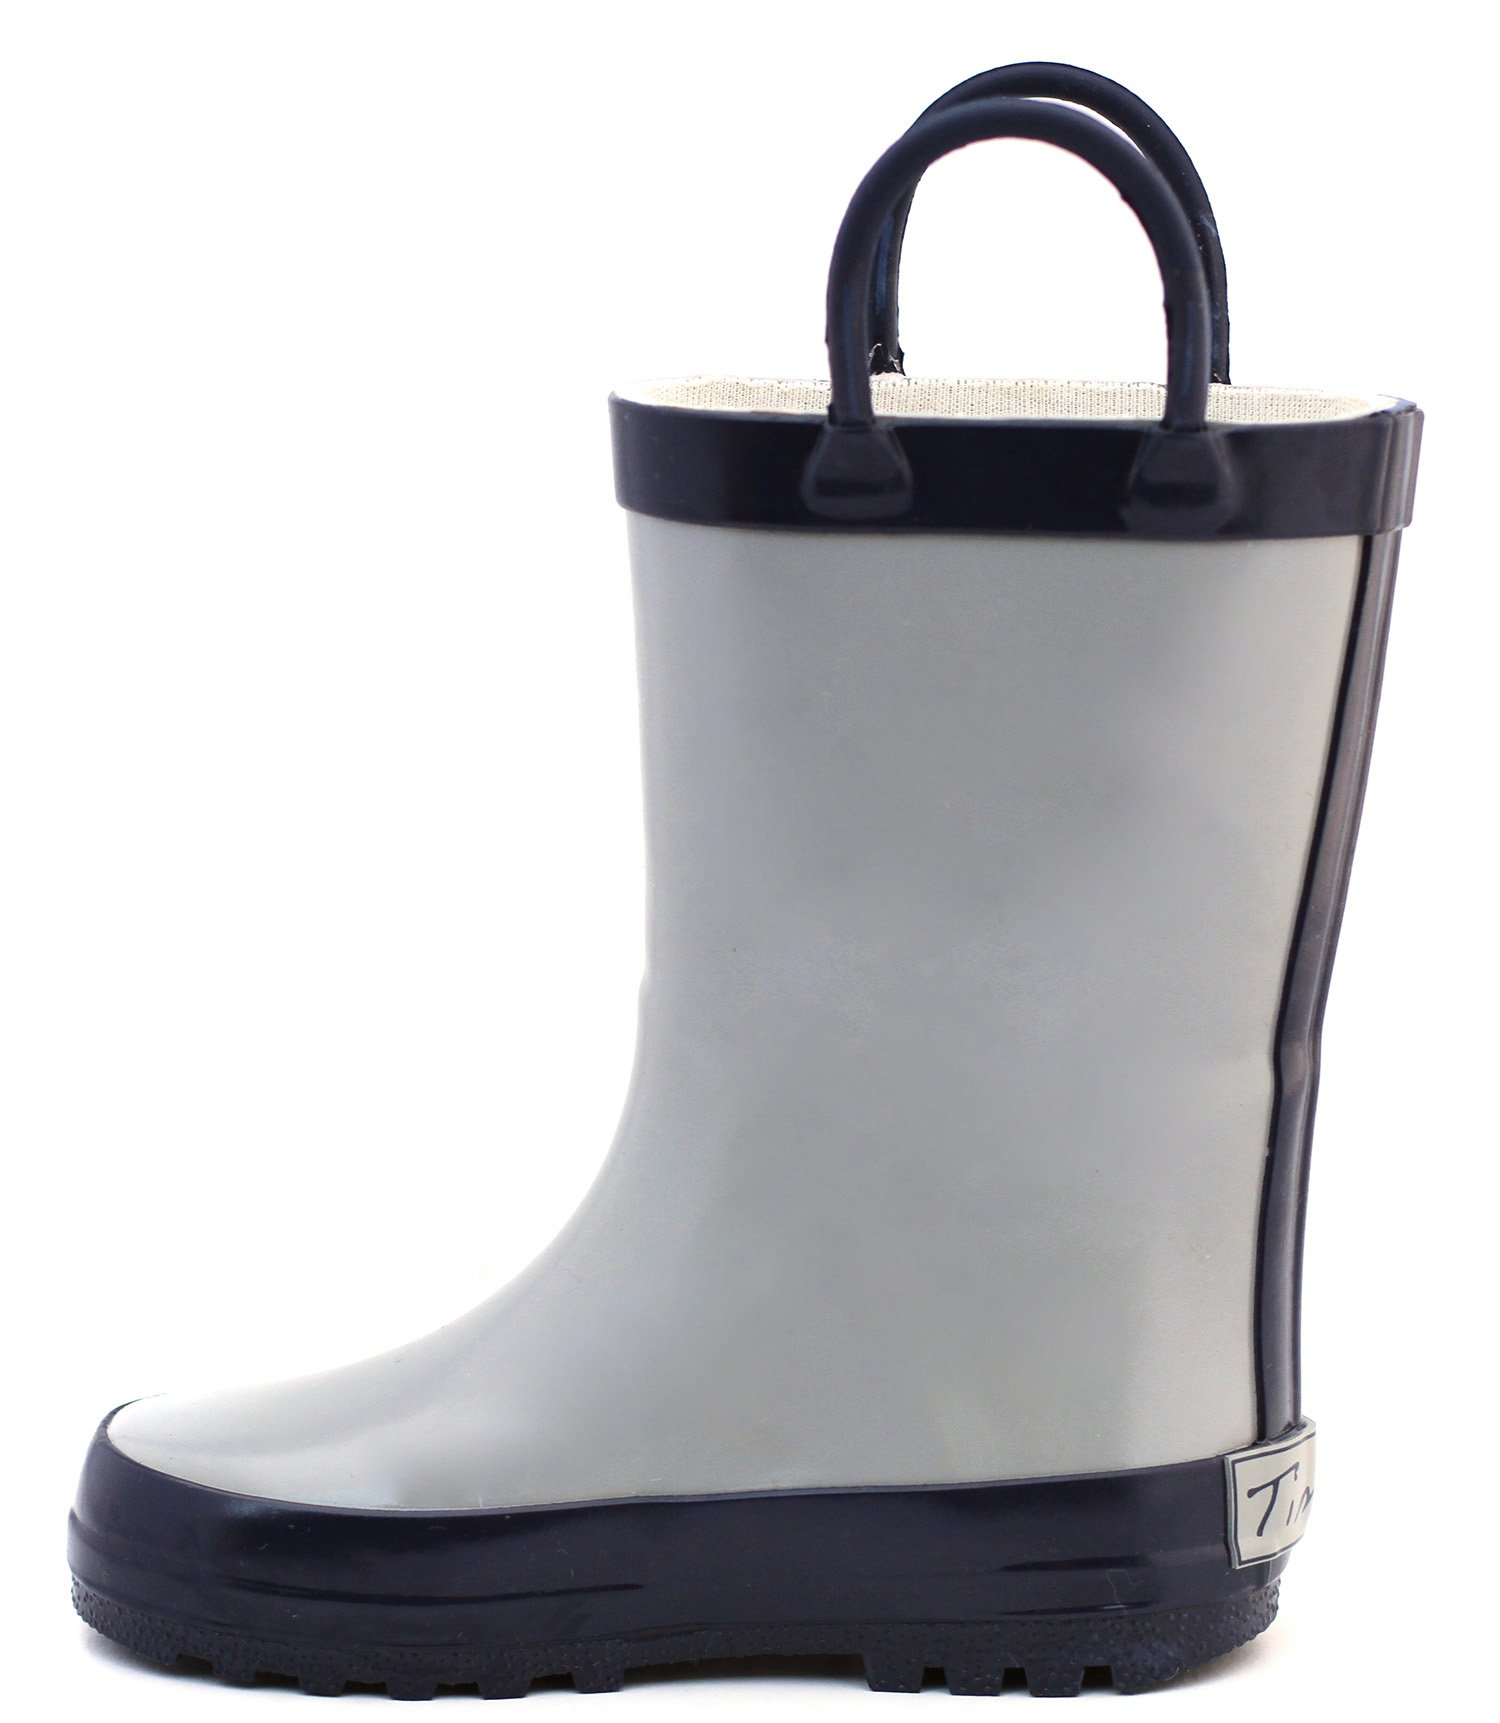 Timbee Gray & Navy Rubber Rain Boot Size 9